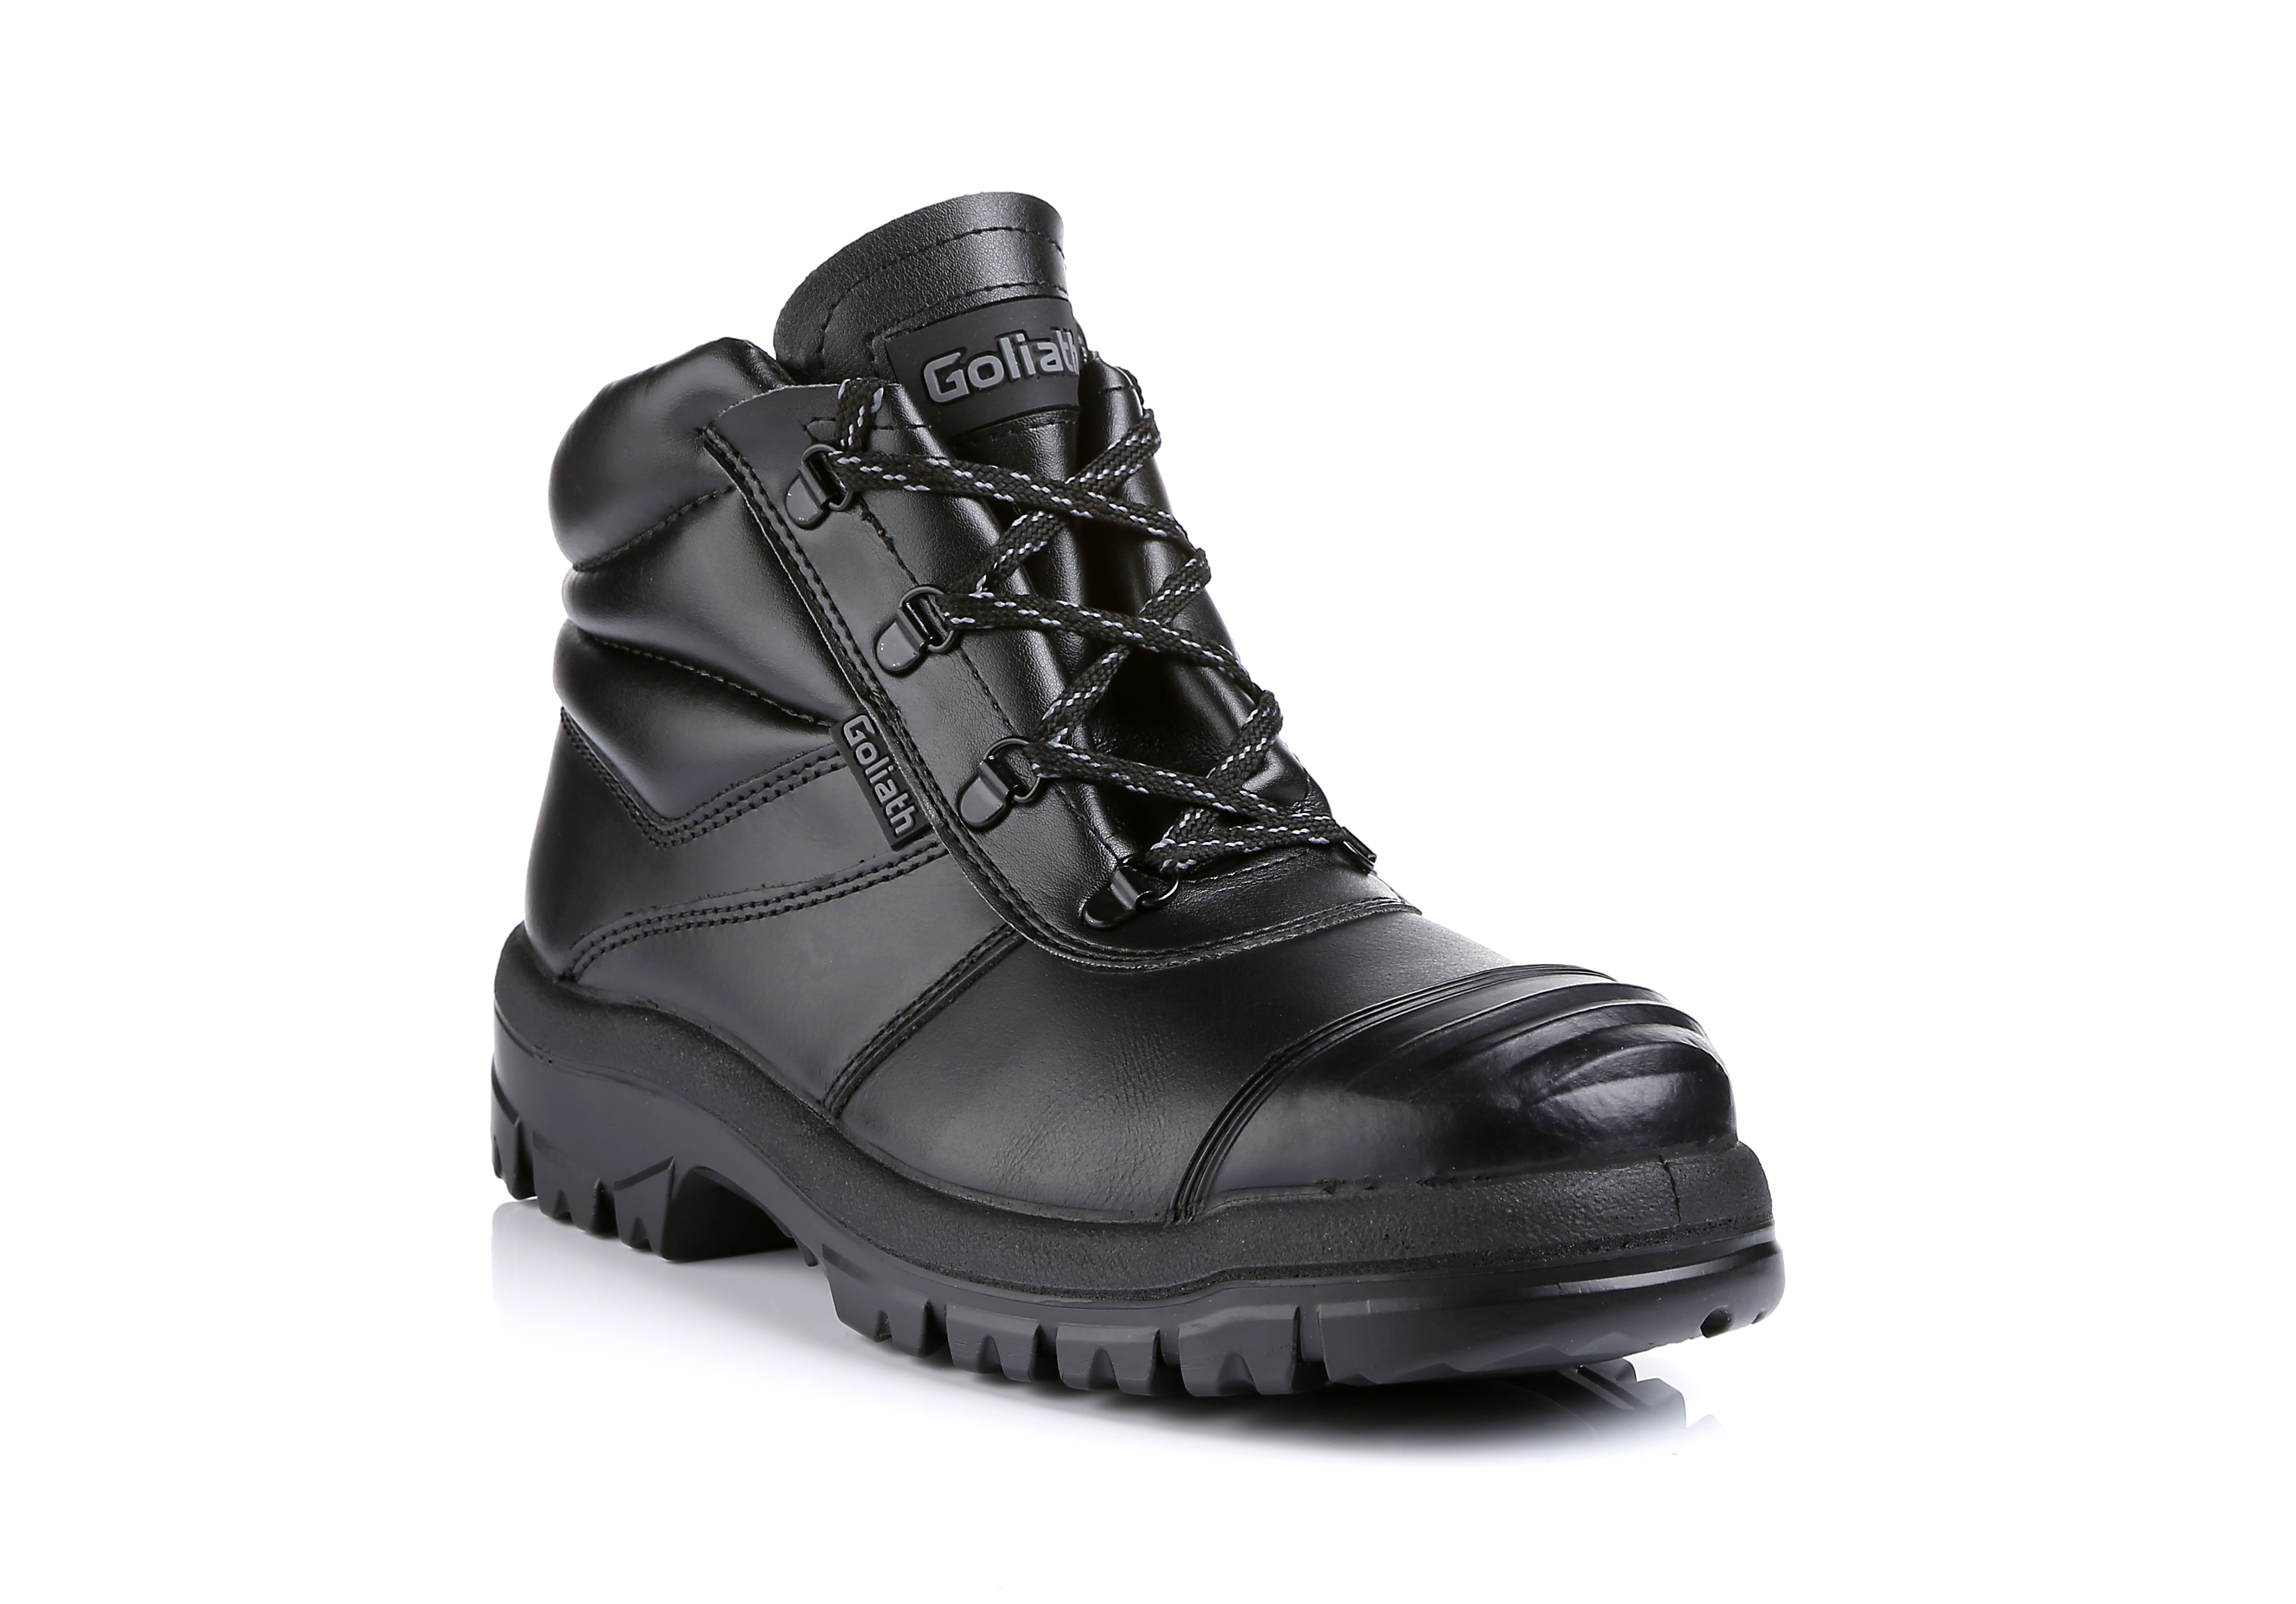 EL170DDR Safety Boots